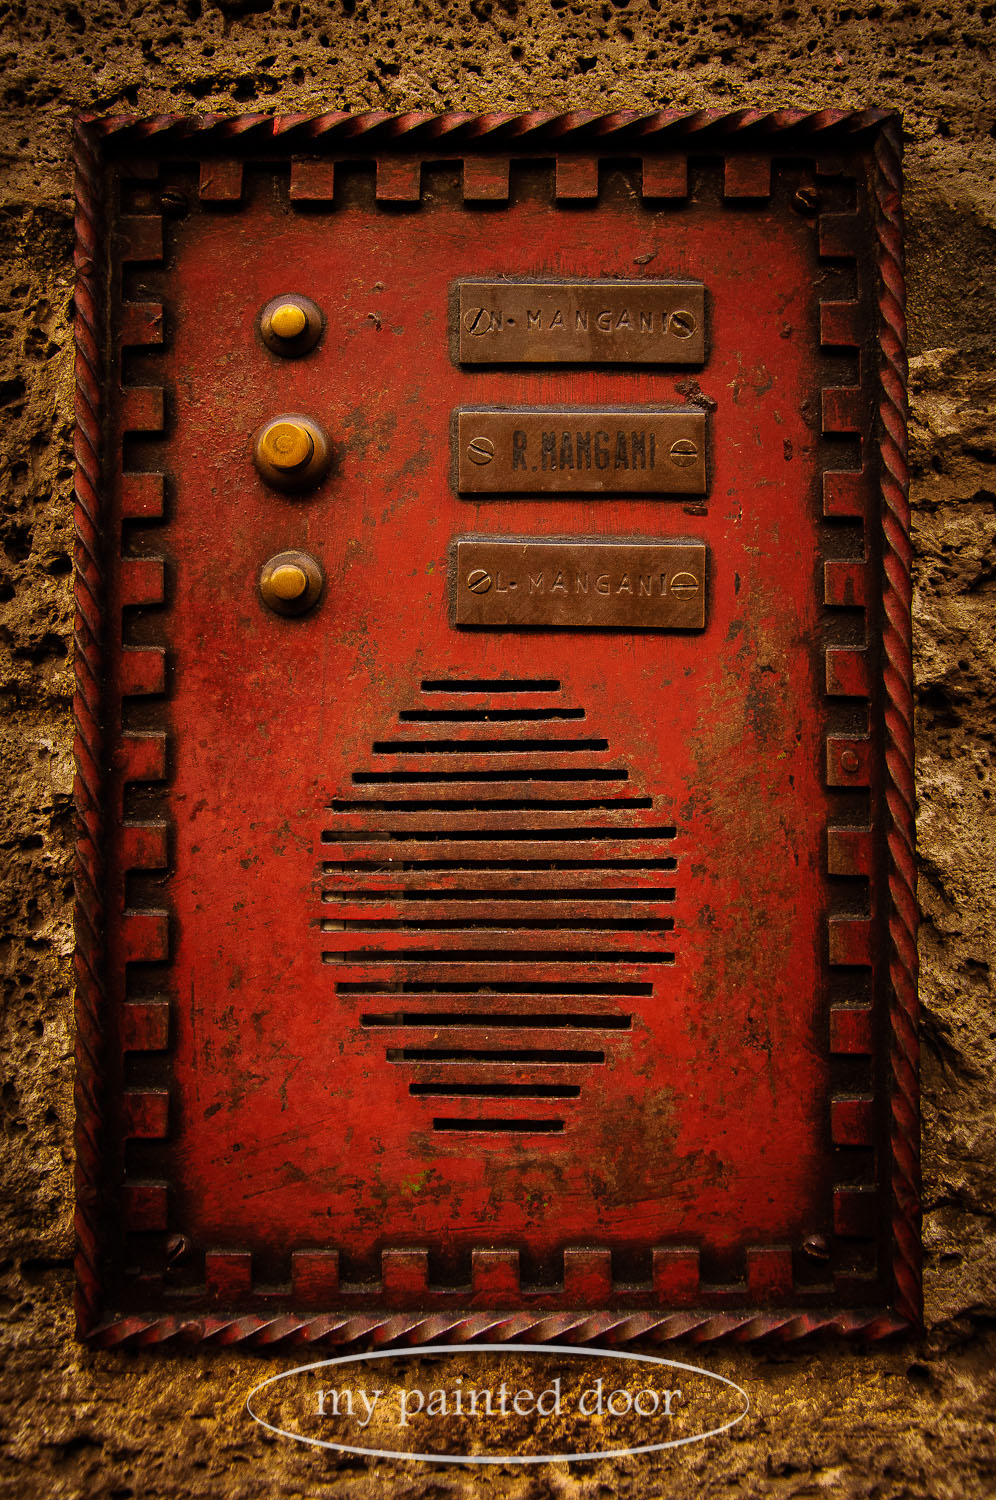 Bright red intercom system in Italy.